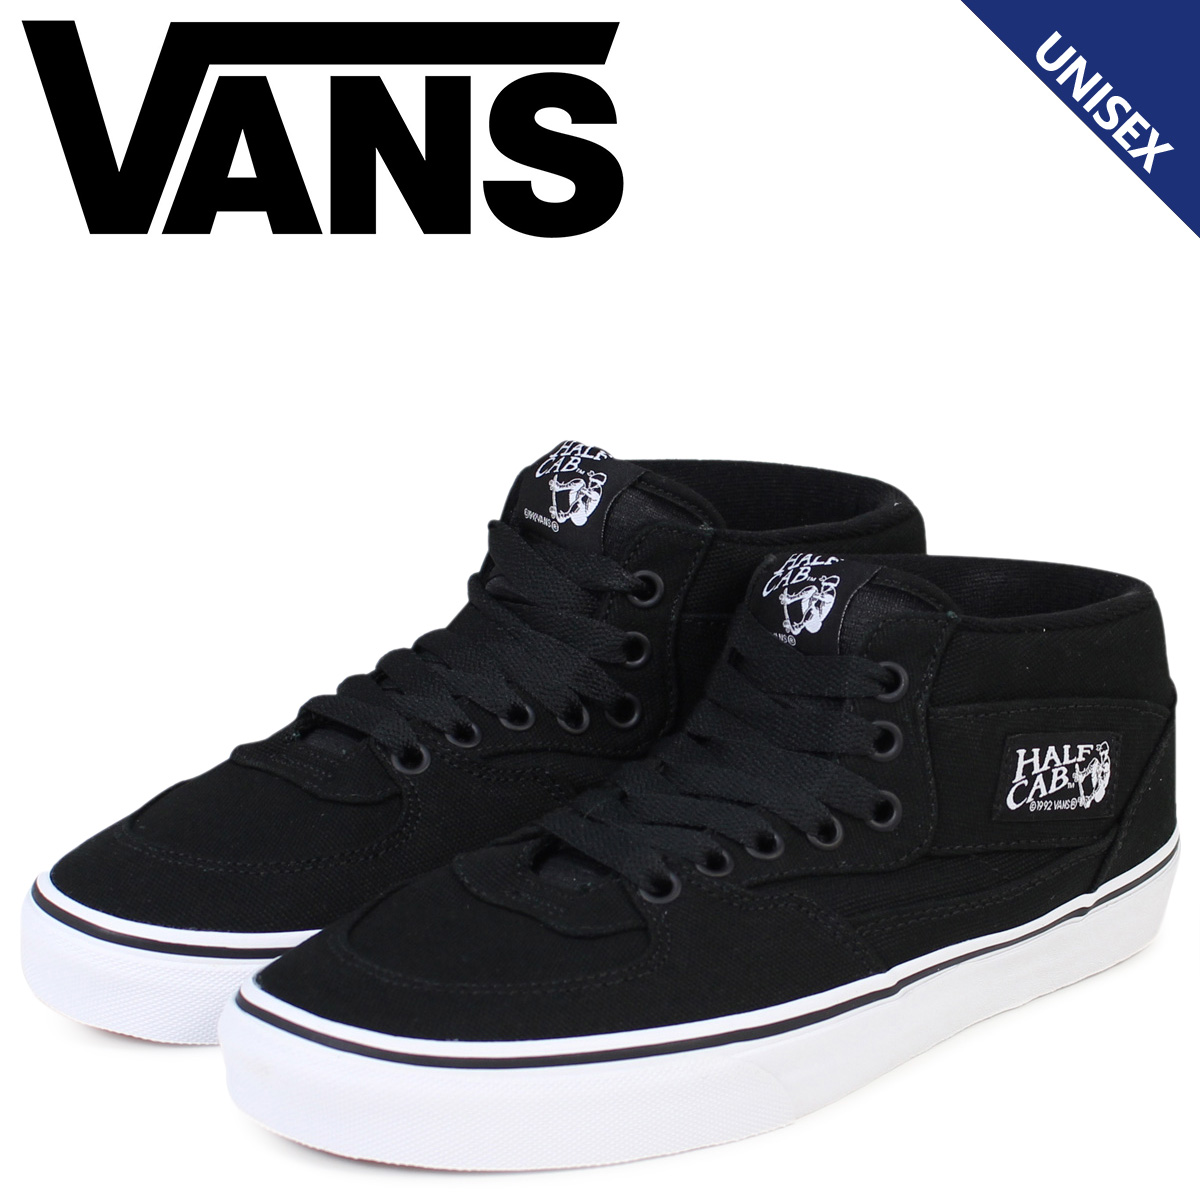 ALLSPORTS  VANS sneakers mens Womens high cut half cab vans vans ... d892aa66bb